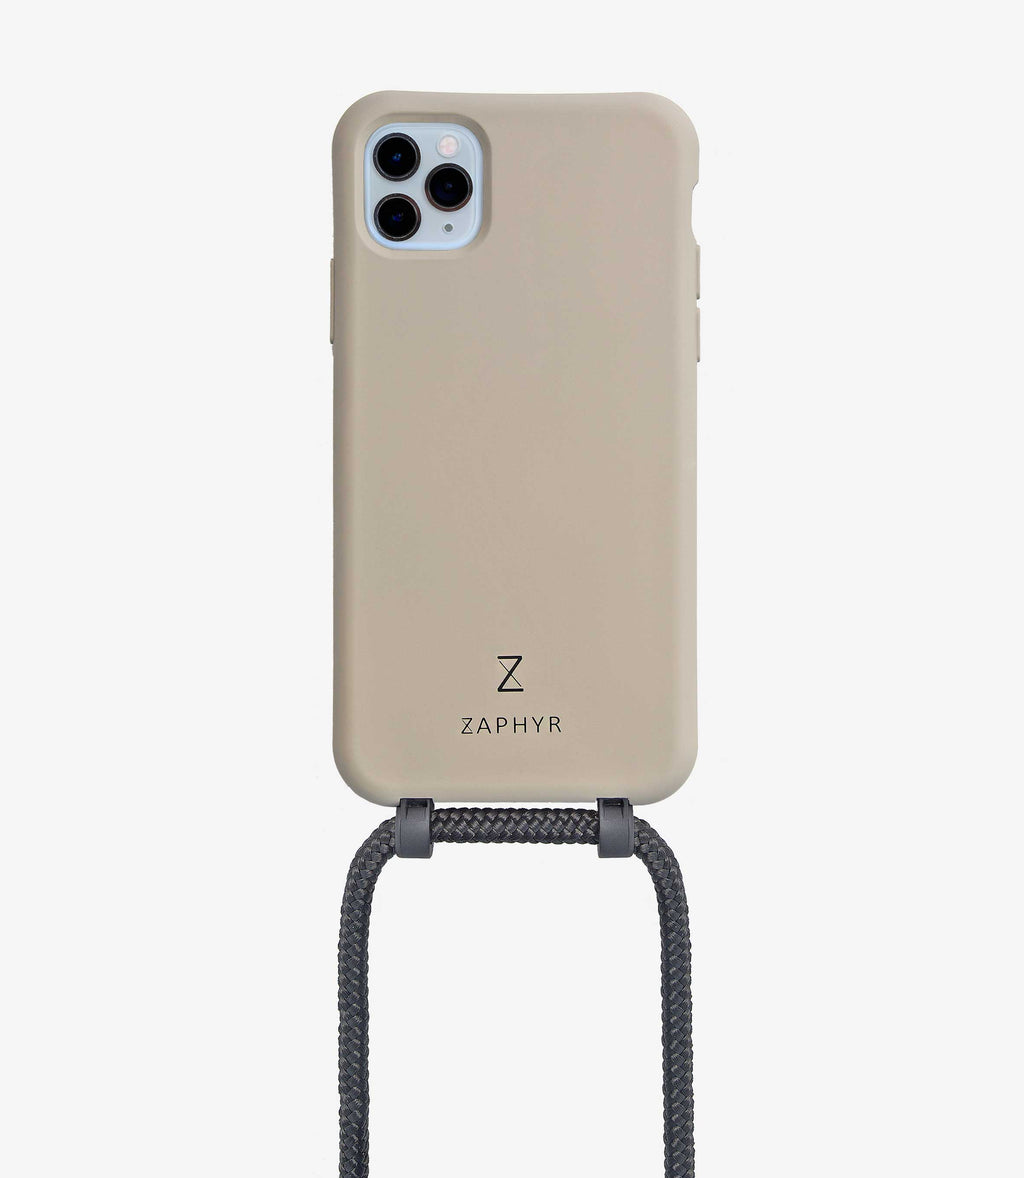 Zaphyr crossbody phone case with detachable strap - Taylor Grey with black strap, iPhone 11 Pro